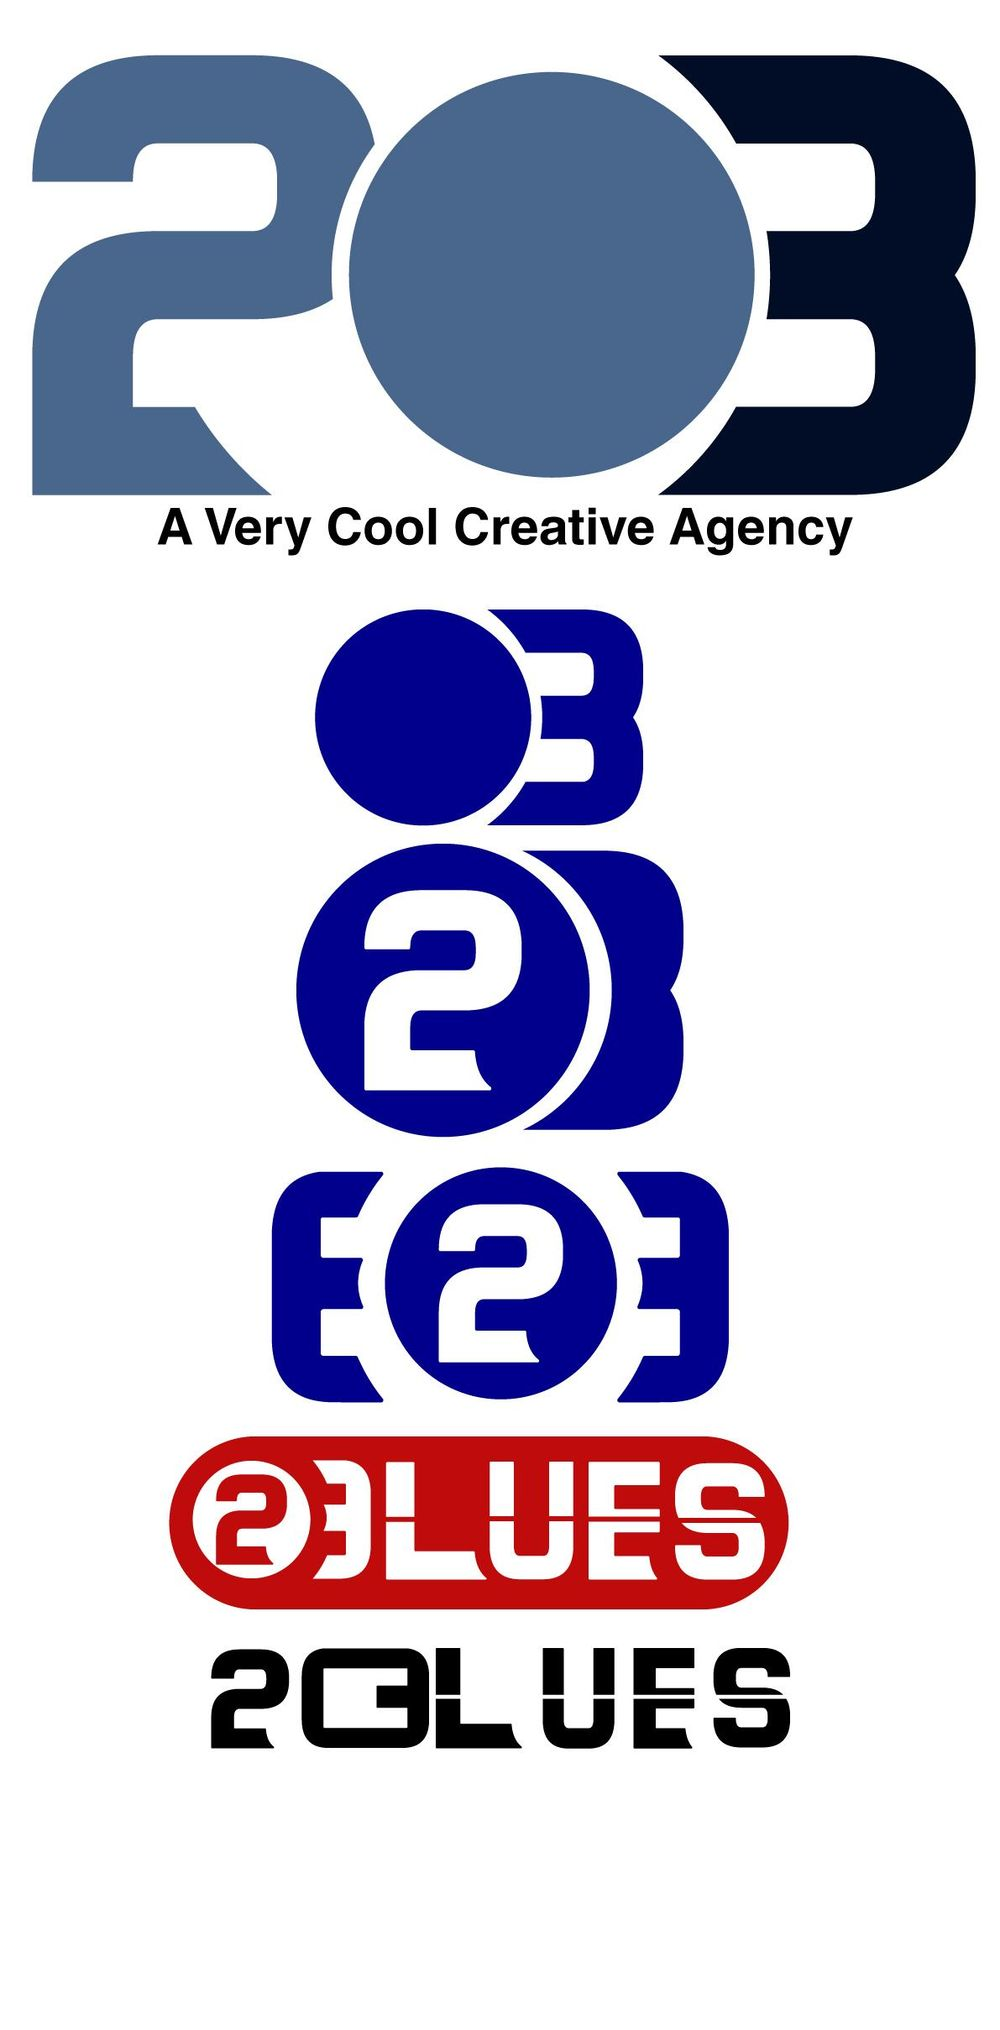 """Brand Identity For An Agency Called """"Twenty Blues"""" - image 3 - student project"""